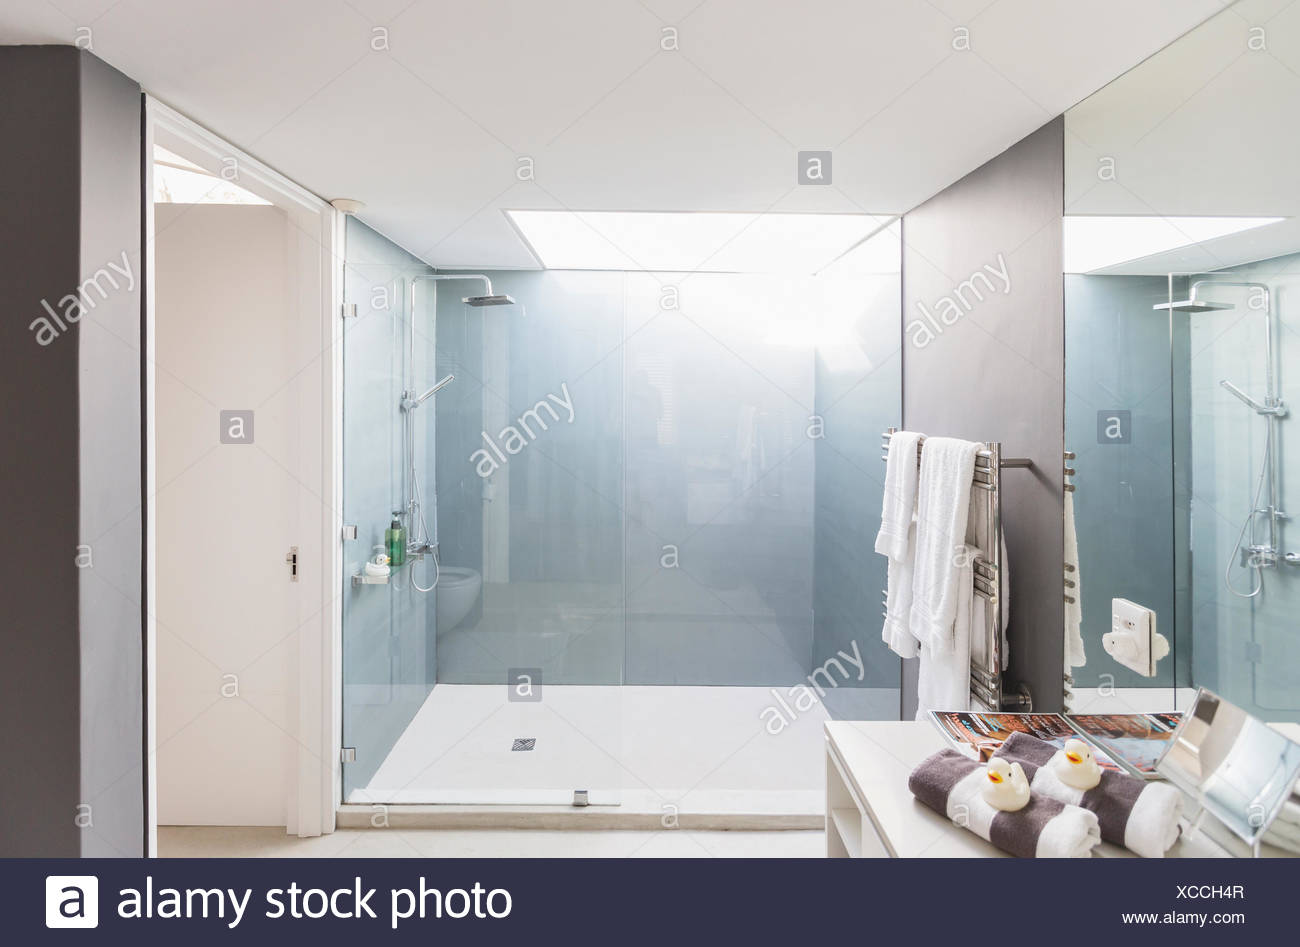 Modern luxury home showcase interior bathroom with shower